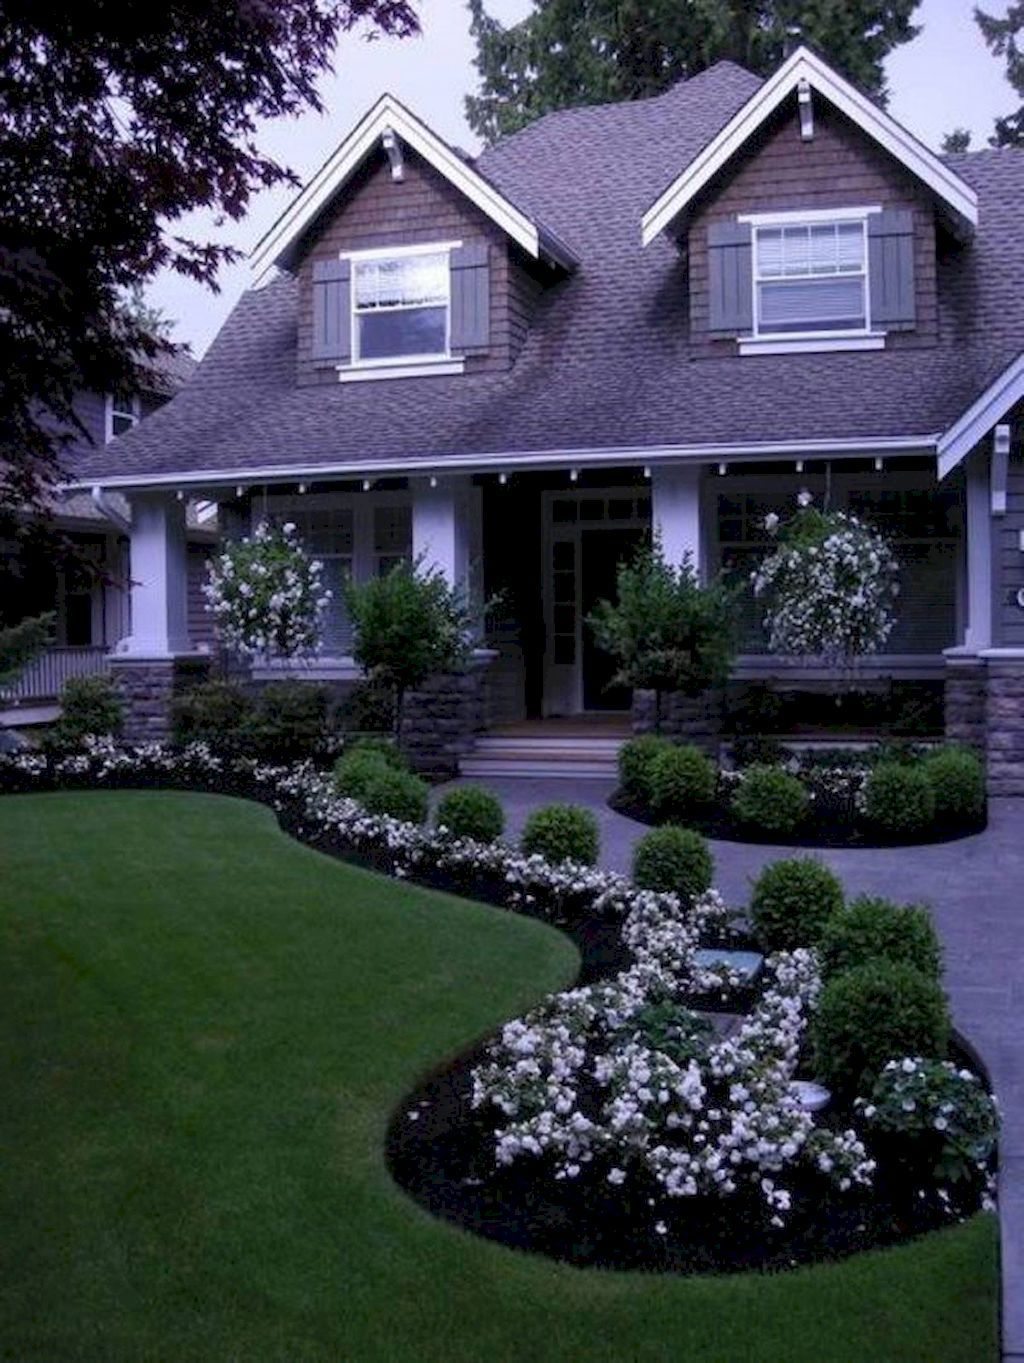 40 beautiful front yard landscaping ideas yard for Front lawn landscaping ideas